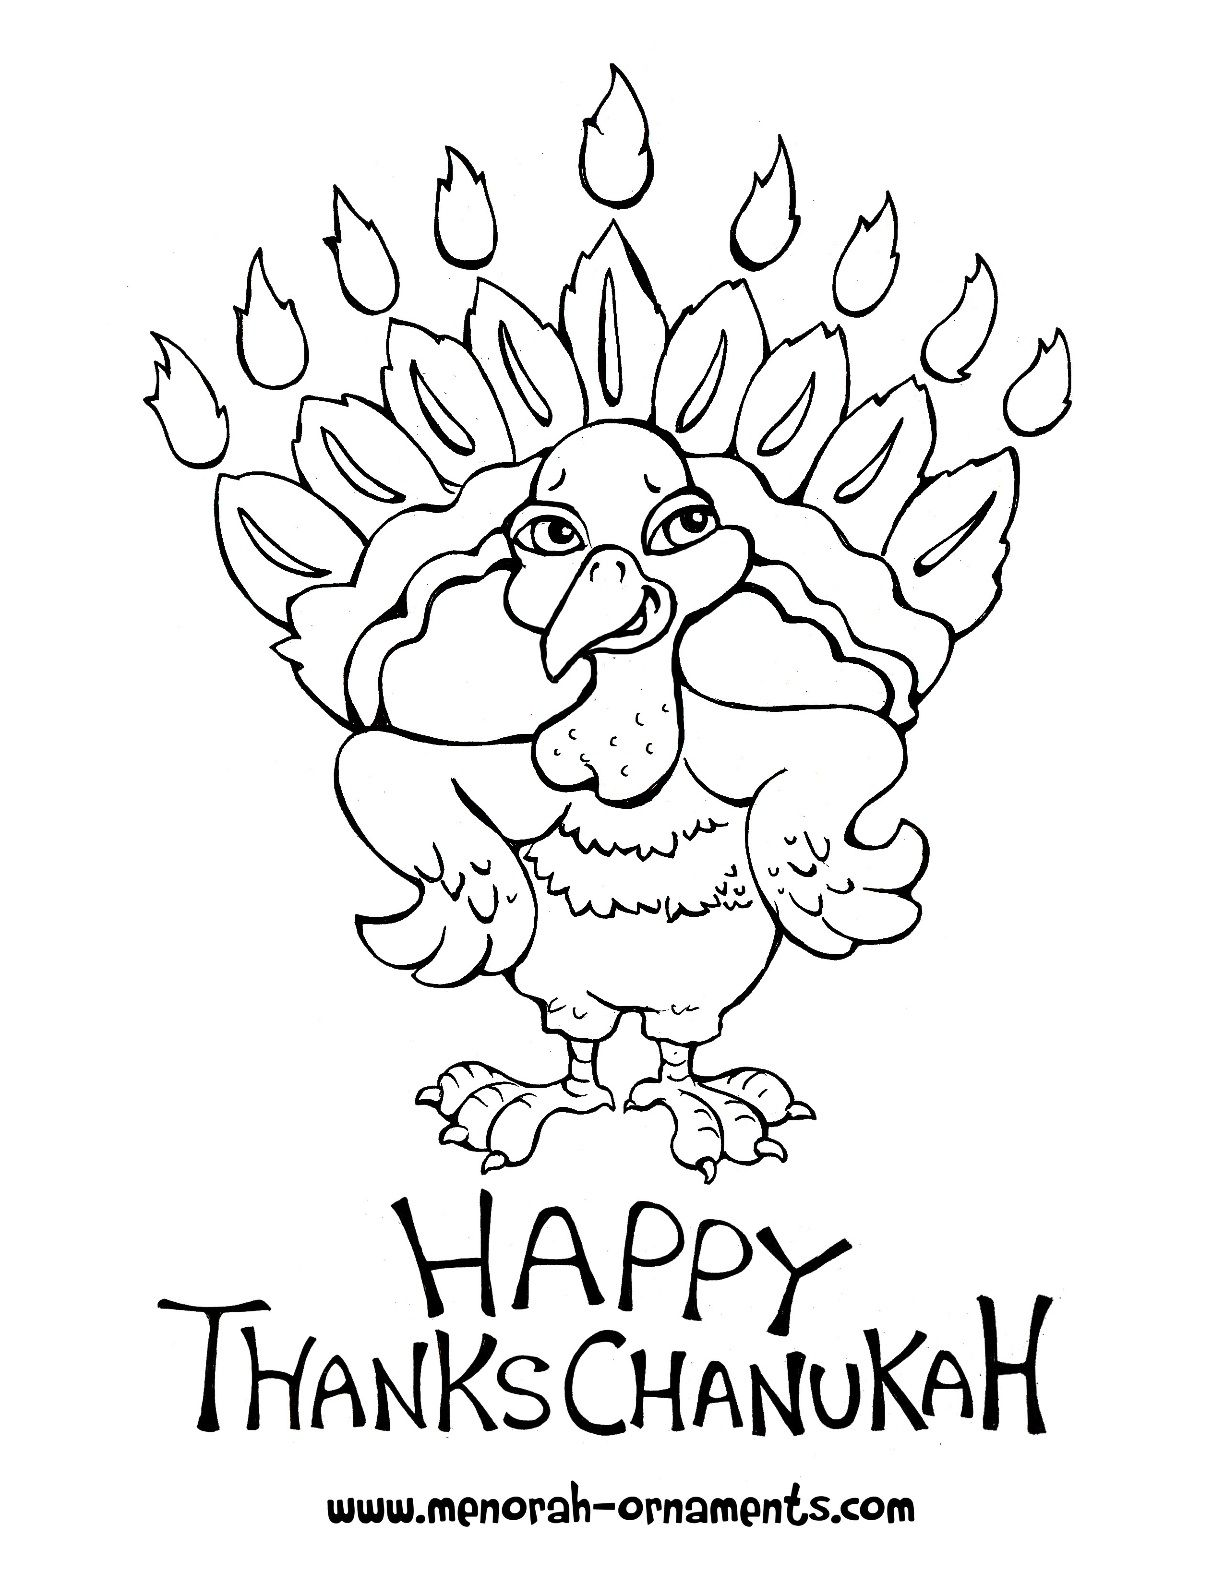 Free Thanksgiving Chanukah Coloring Sheet From